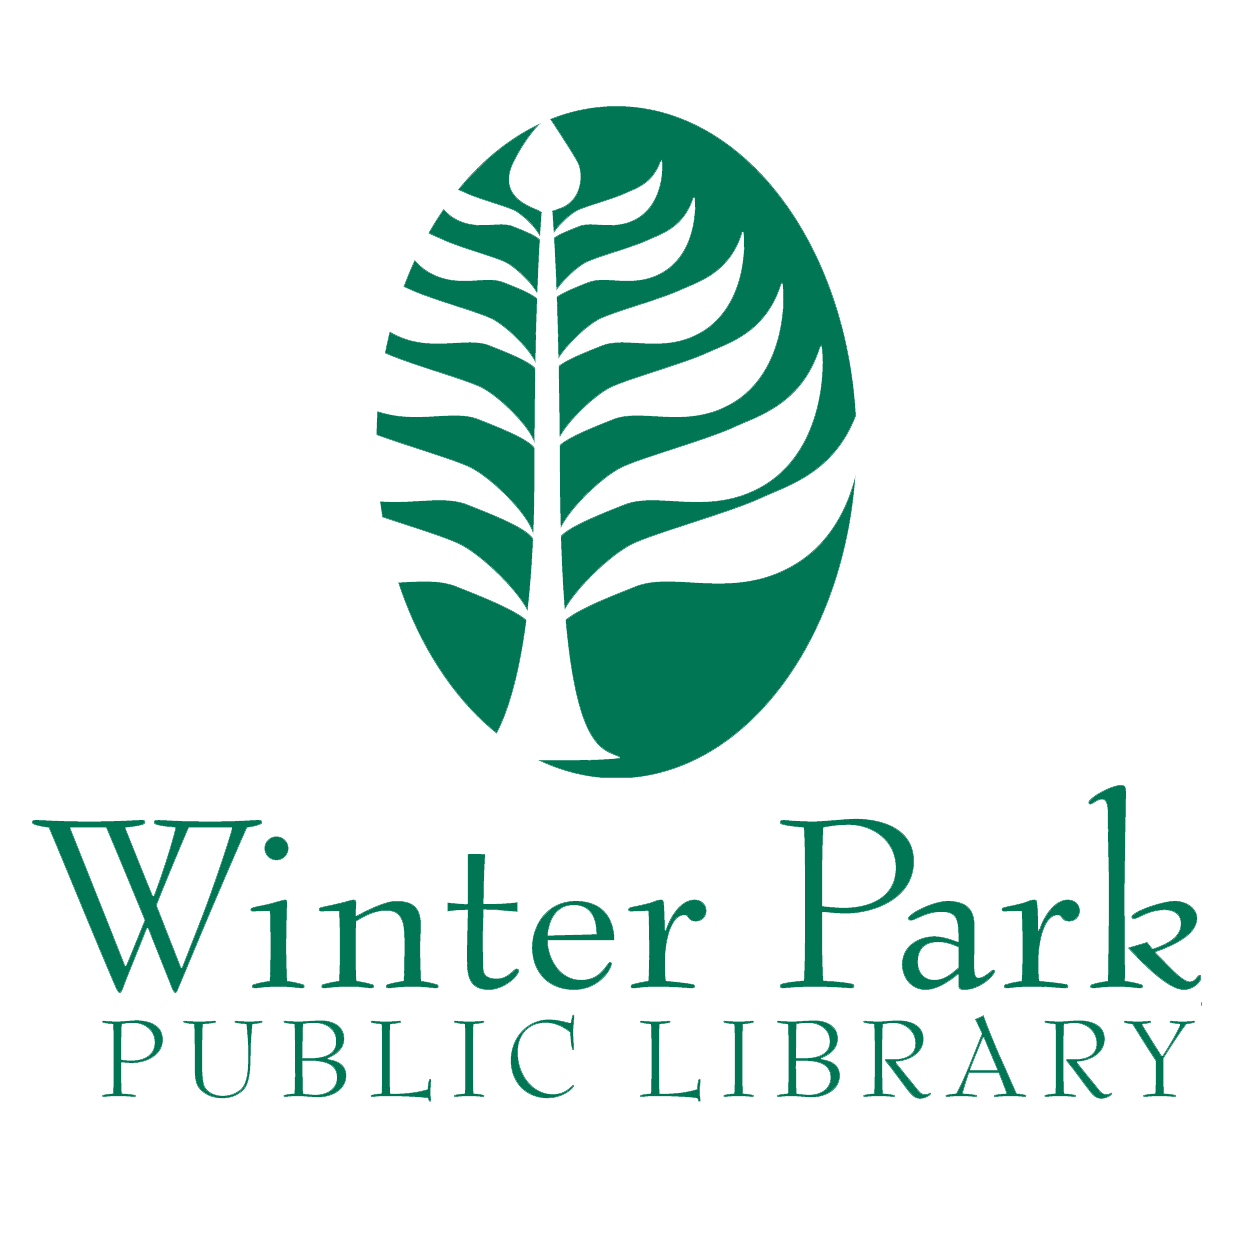 Winter Park Public Library   We are proud to partner with the Winter Park Library on our Weekend Adventure programs, and Family Game Nights.